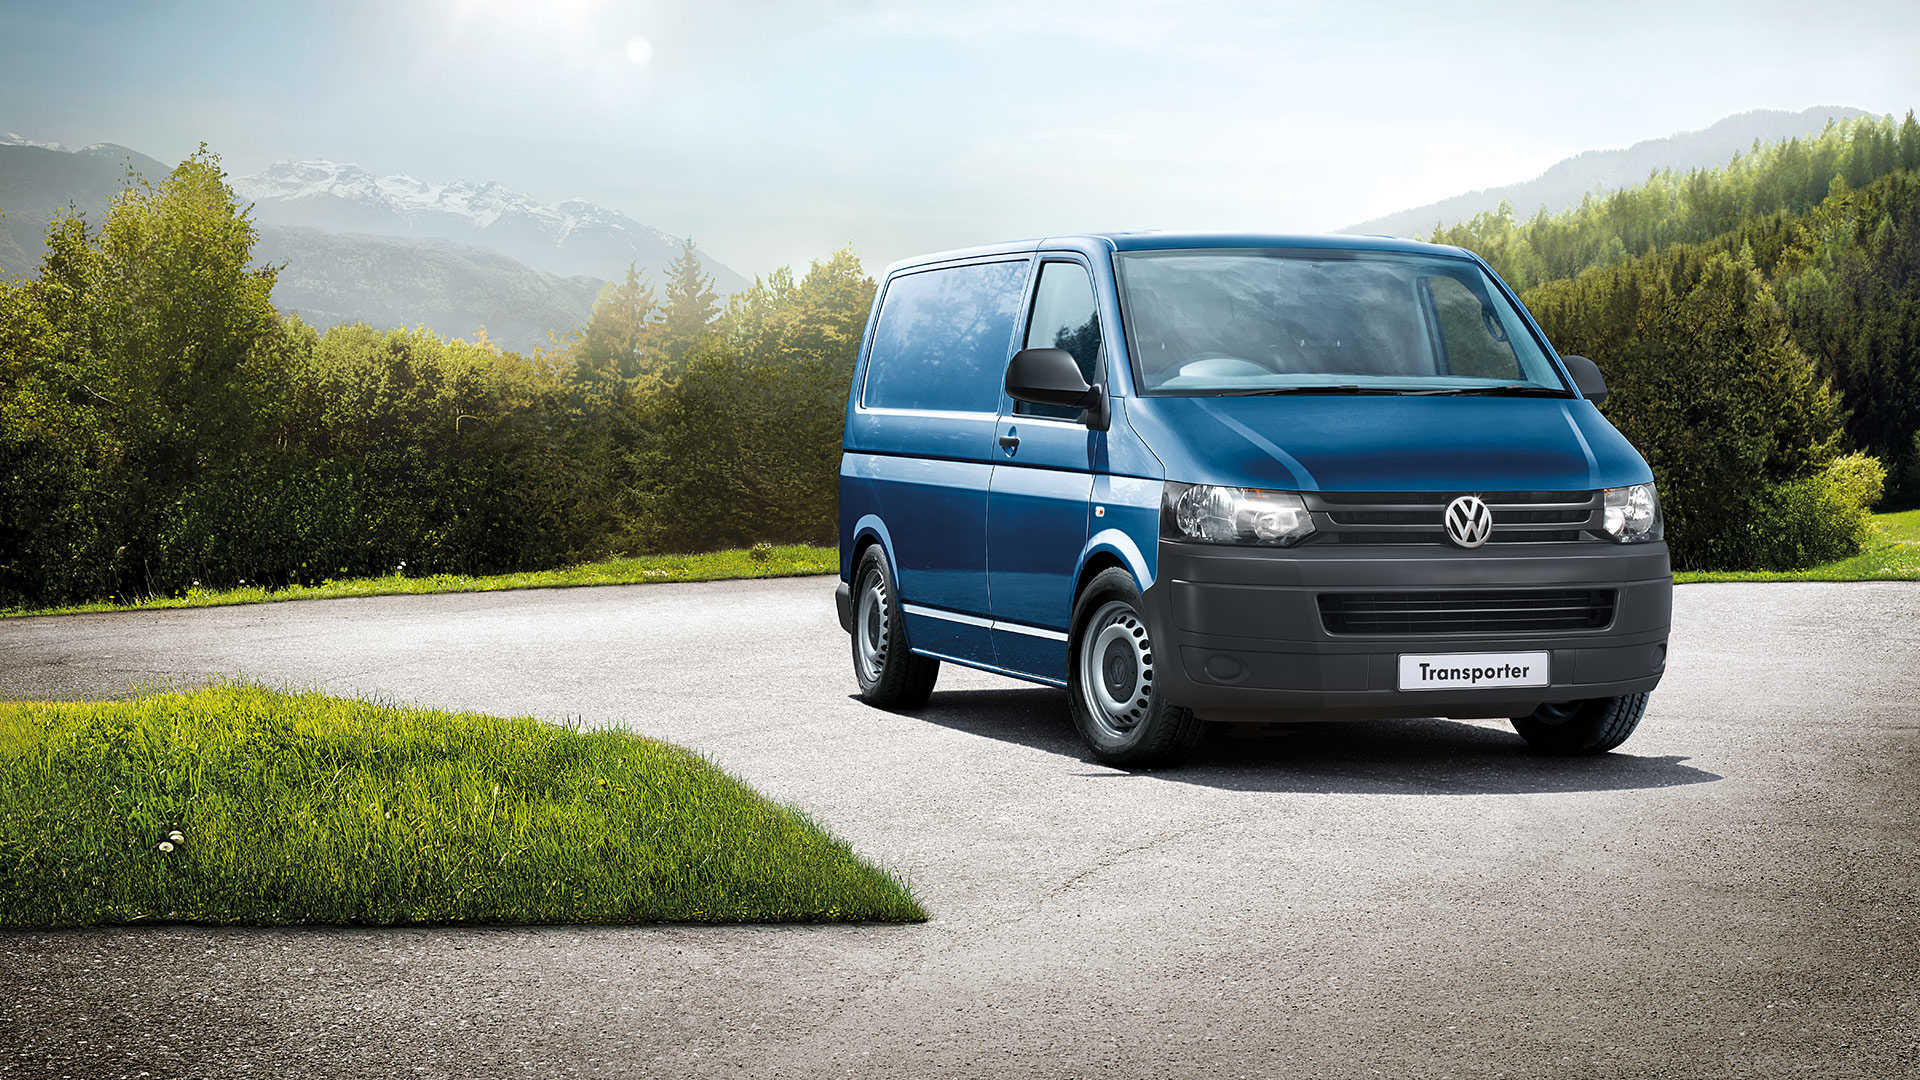 New Volkswagen (VW) Transporter Vans For Sale | Lookers